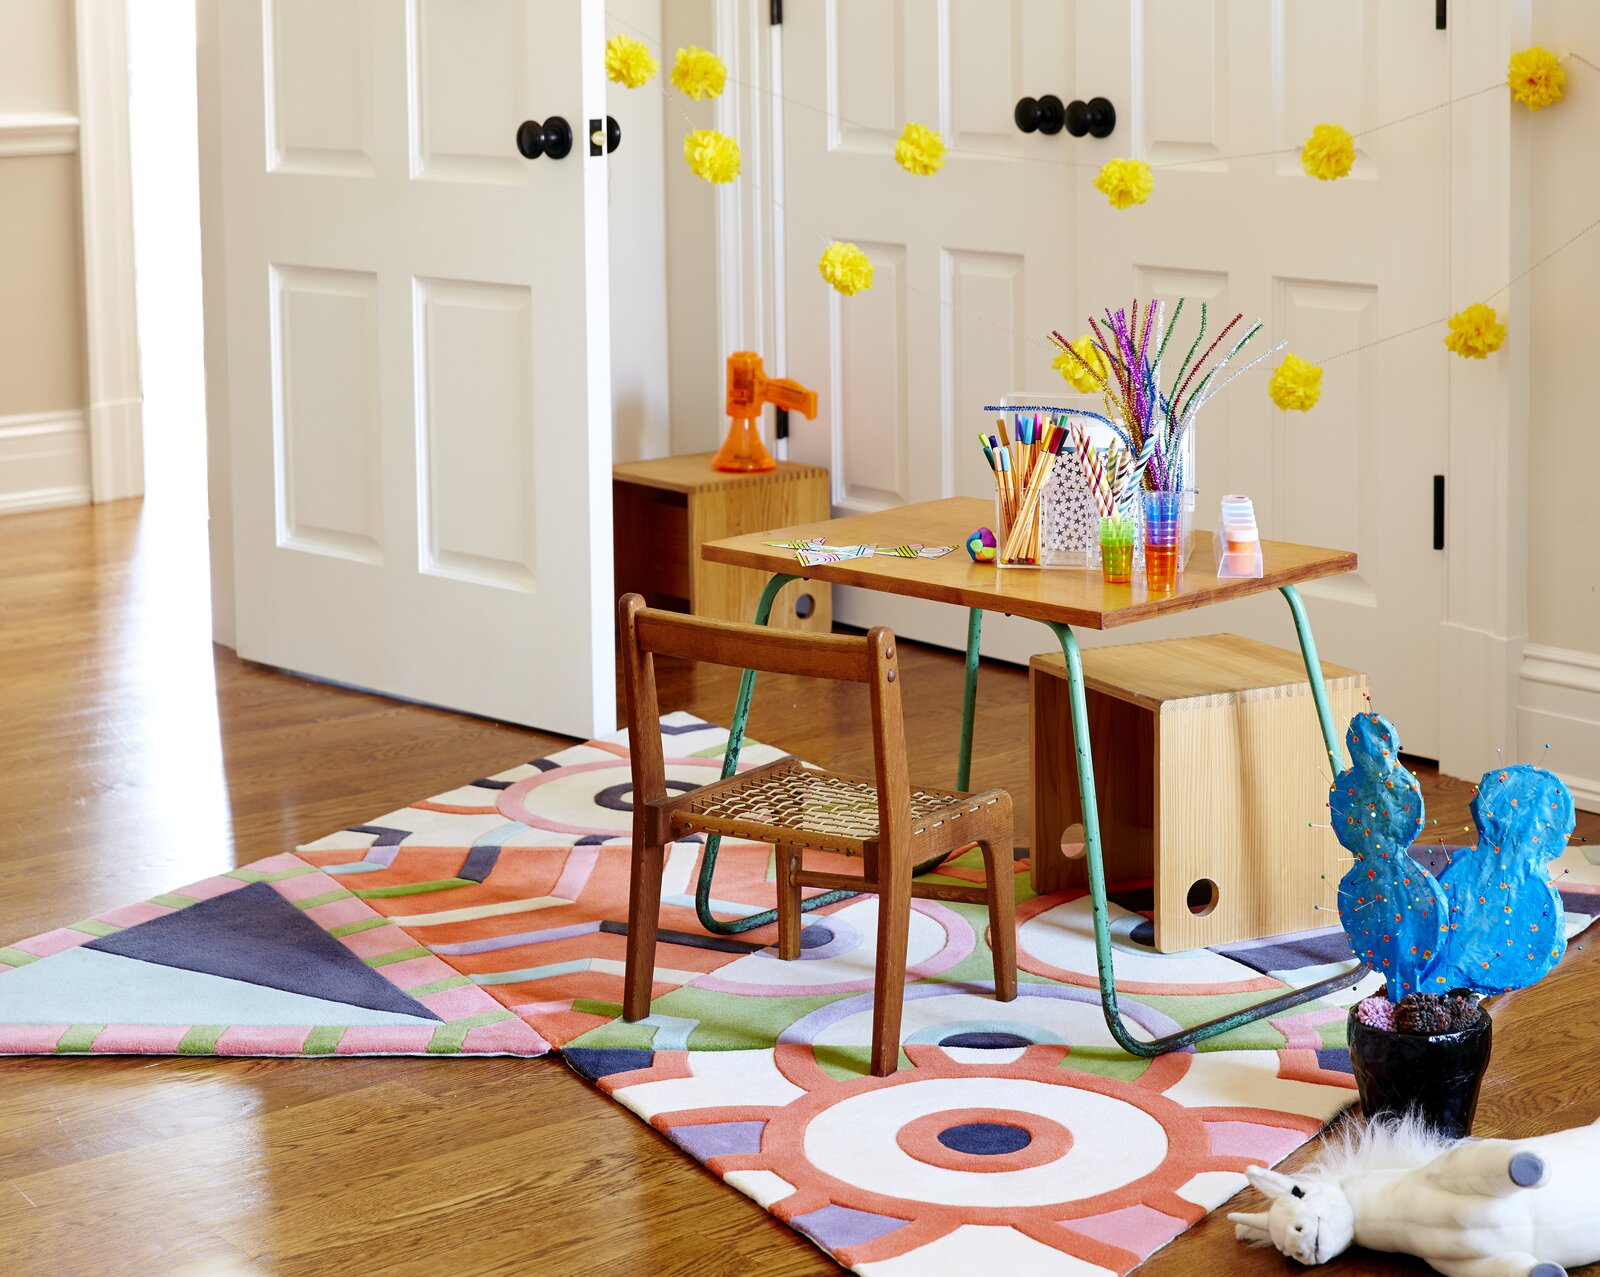 A modular rug by Kinder MODERN adds zest to a petite activity area.  Photo 7 of 13 in How to Design a Room That Grows Up With Your Kids